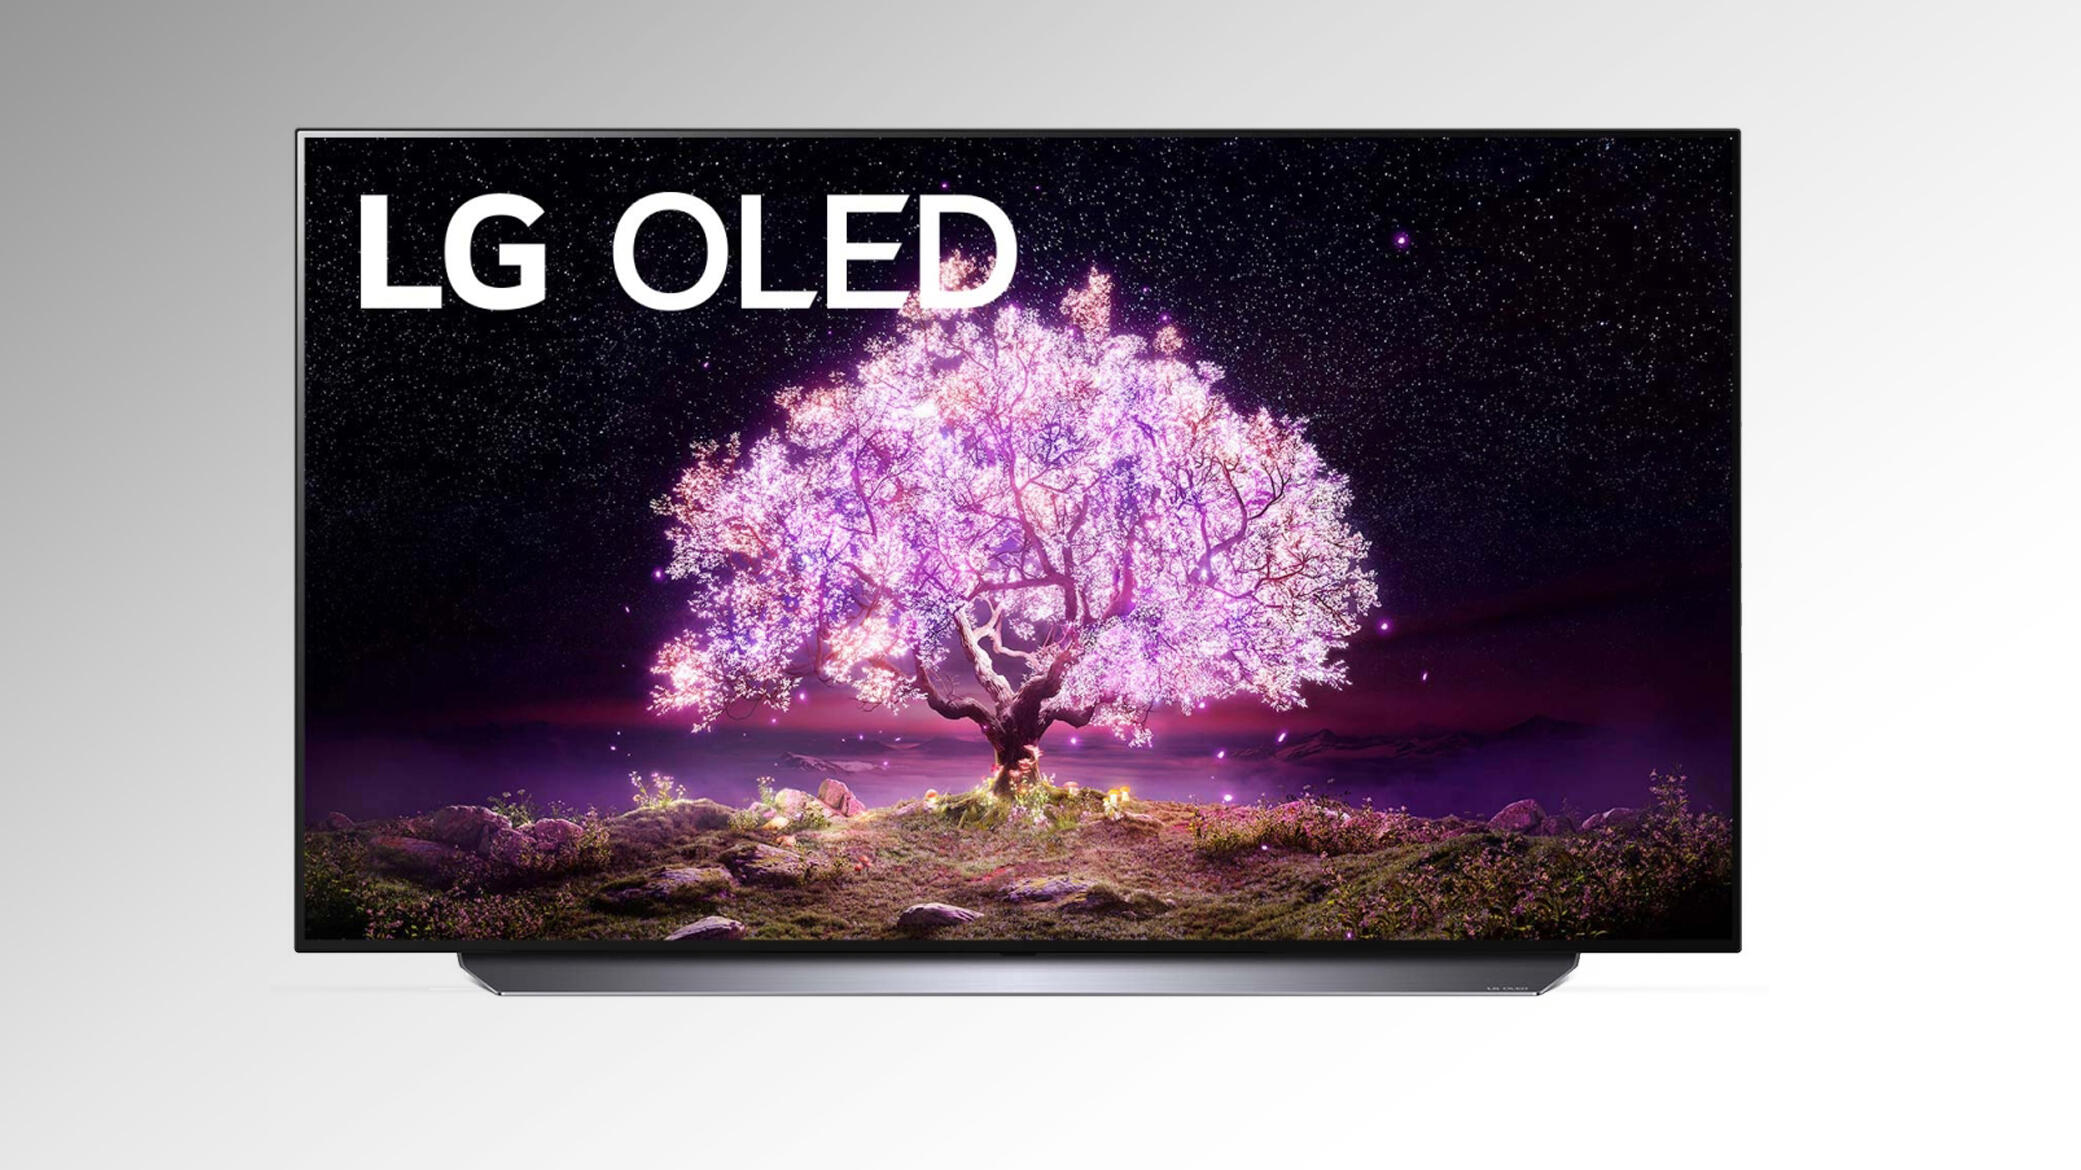 Get LG's latest 55-inch OLED smart TV for 10% off along with a 0 gift card